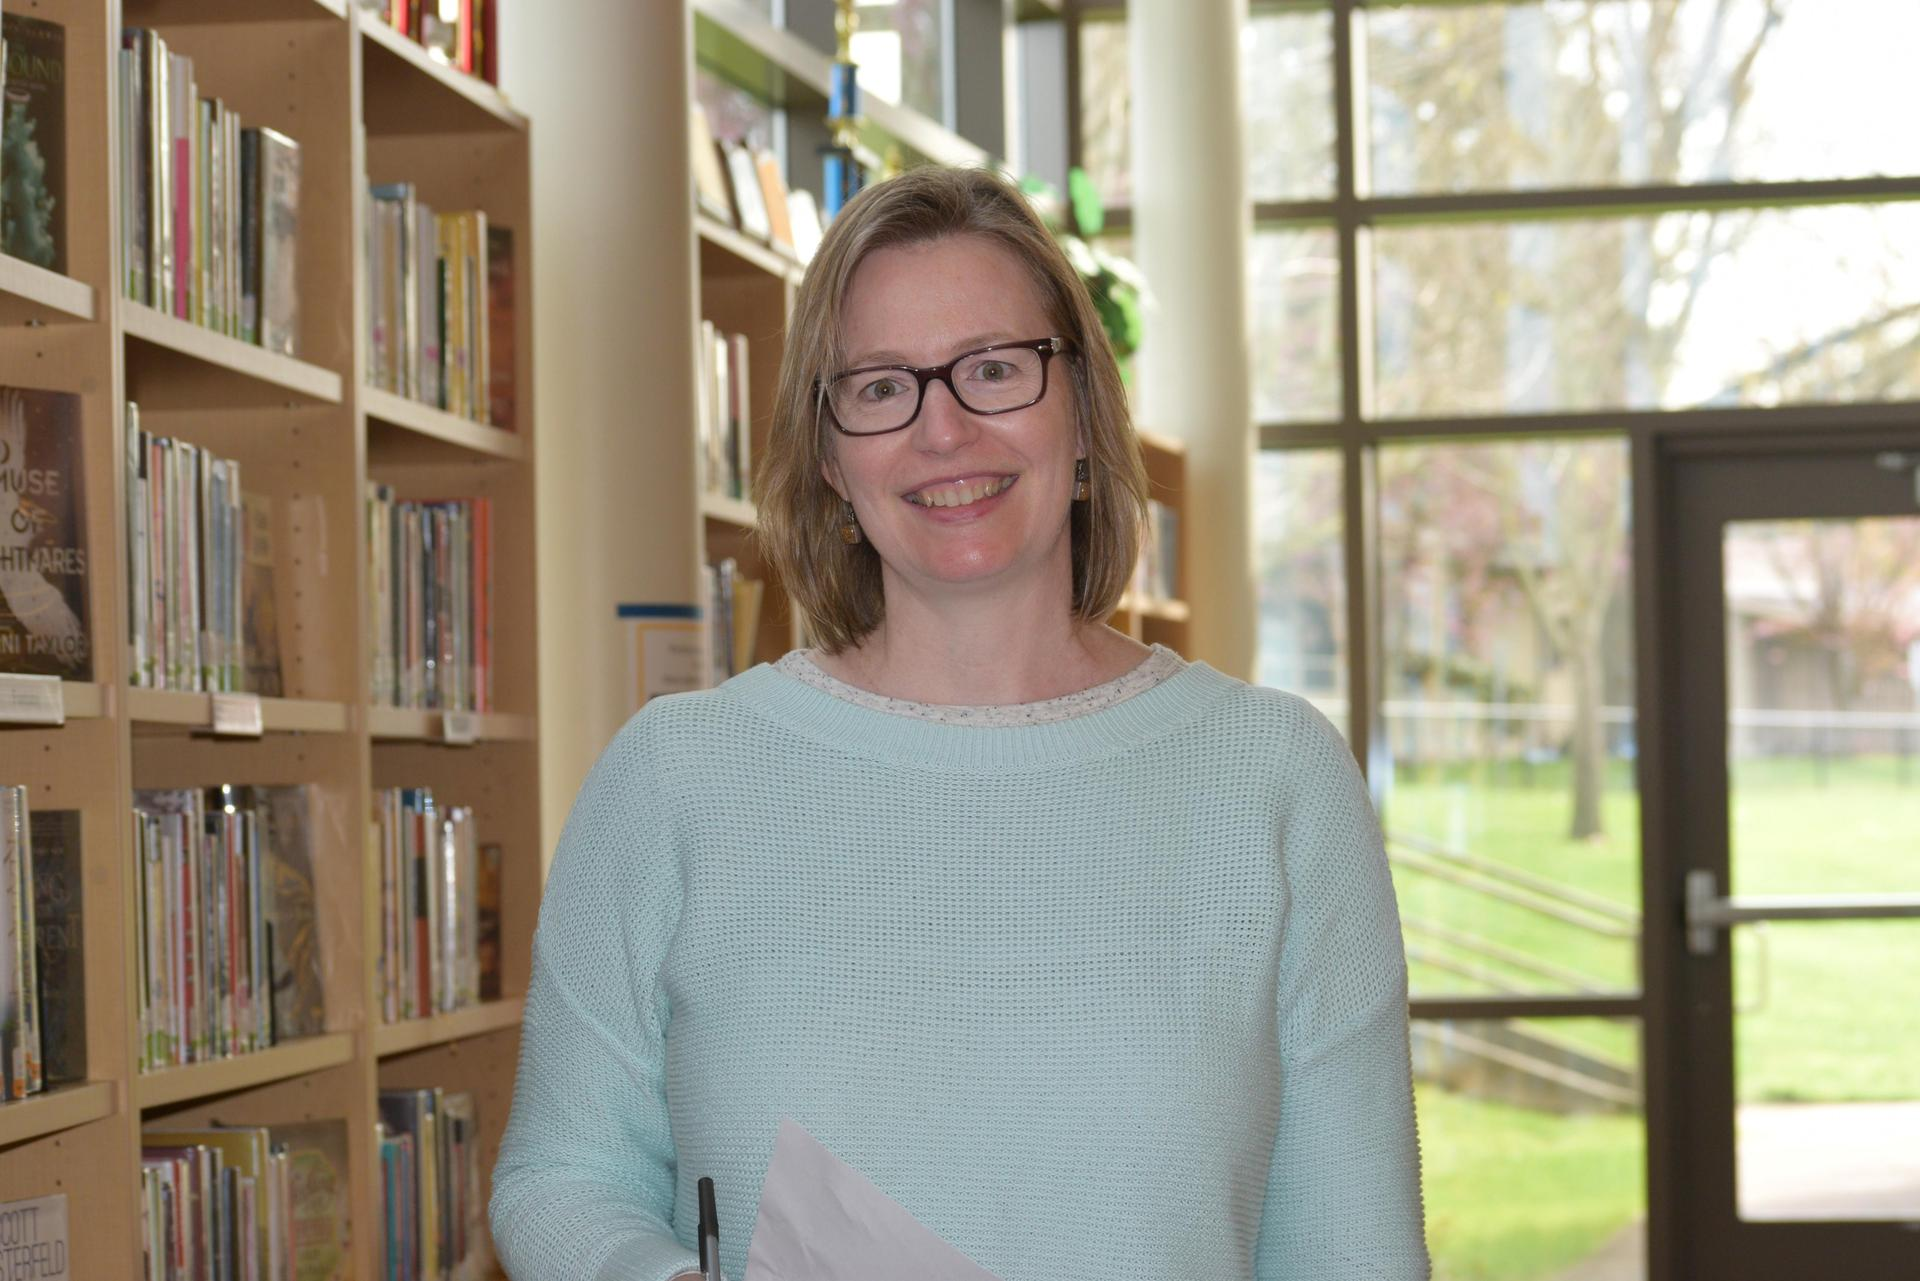 woman smiling as she stands next to shelves of books in a library